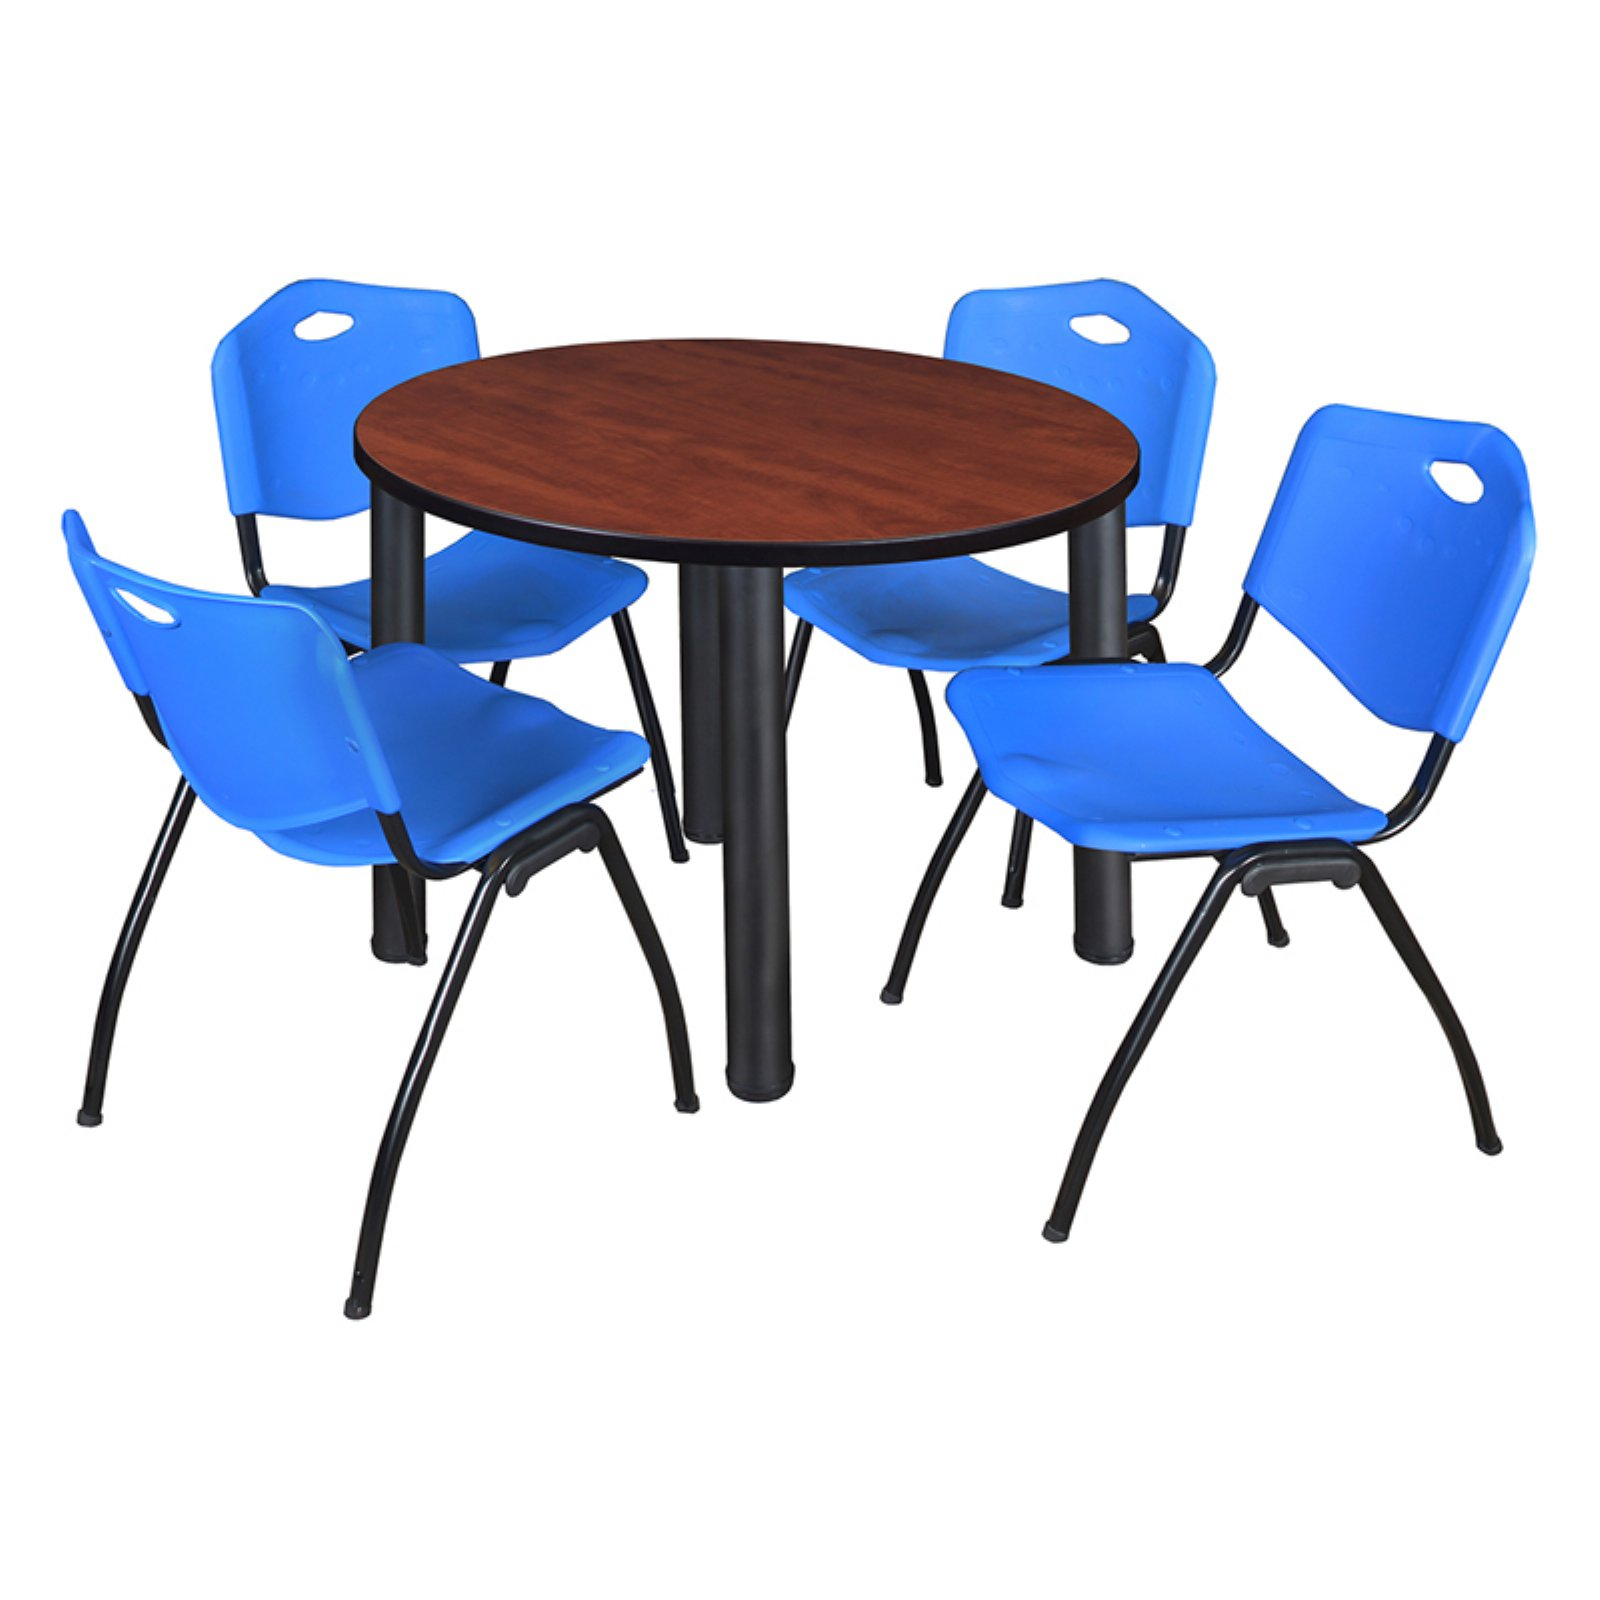 Regency Kee Round Cherry Breakroom Table With 4 Stackable M Chairs Chrome Blue